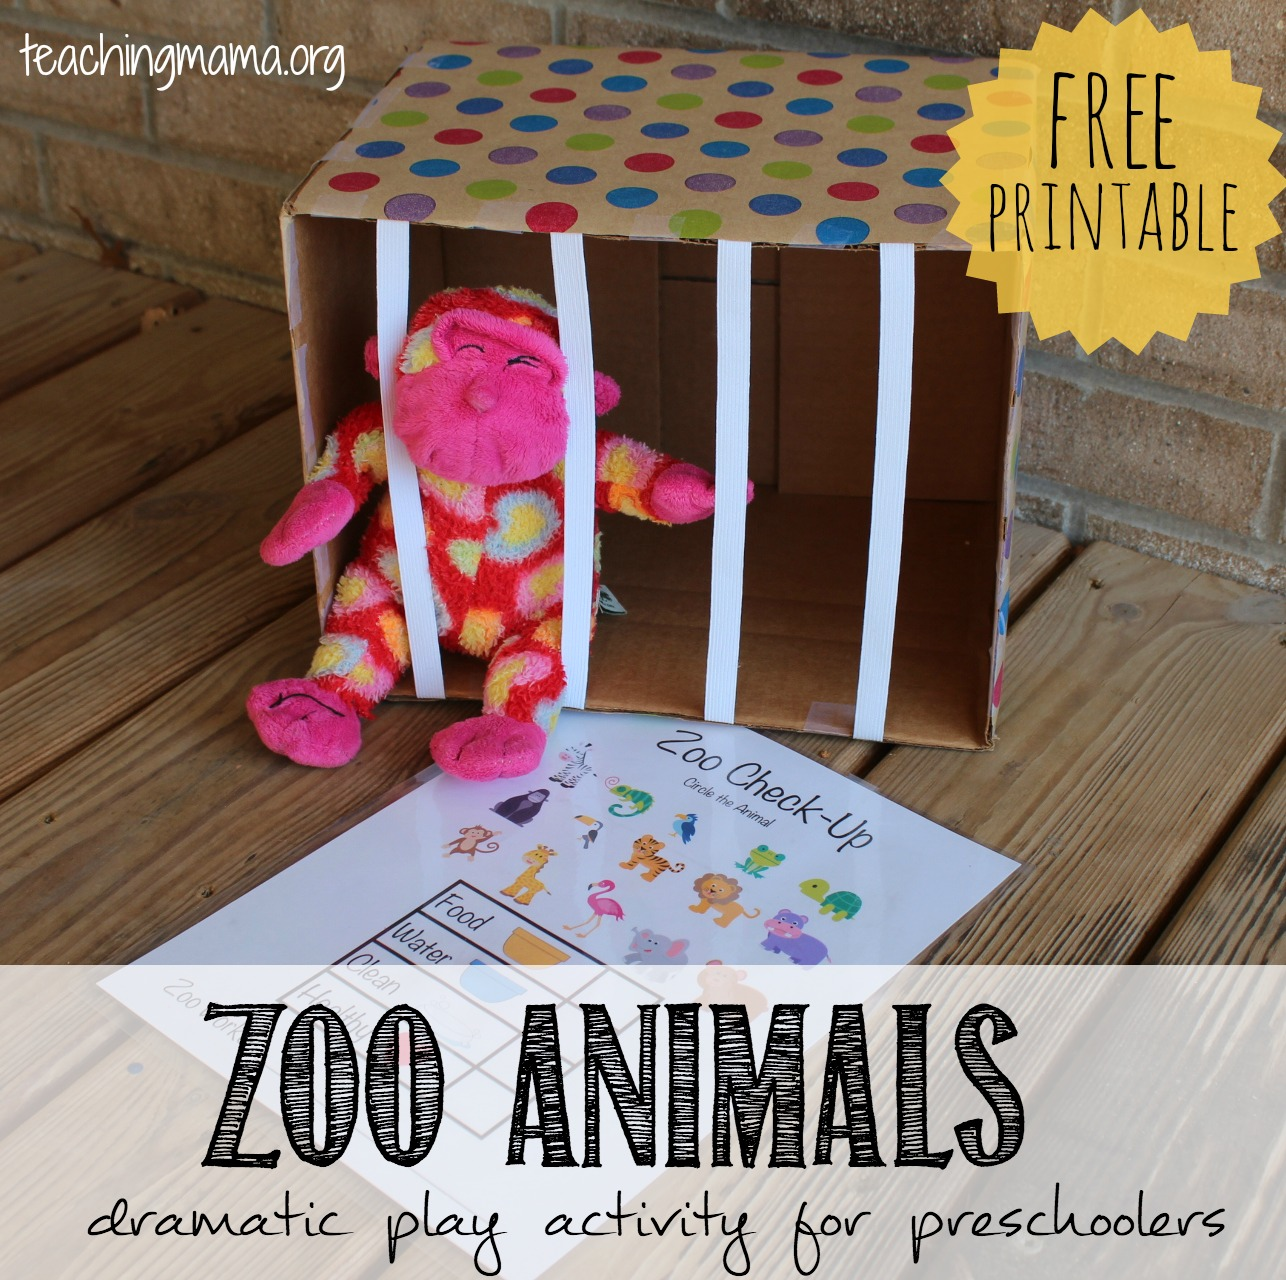 Zoo Dramatic Play Activity